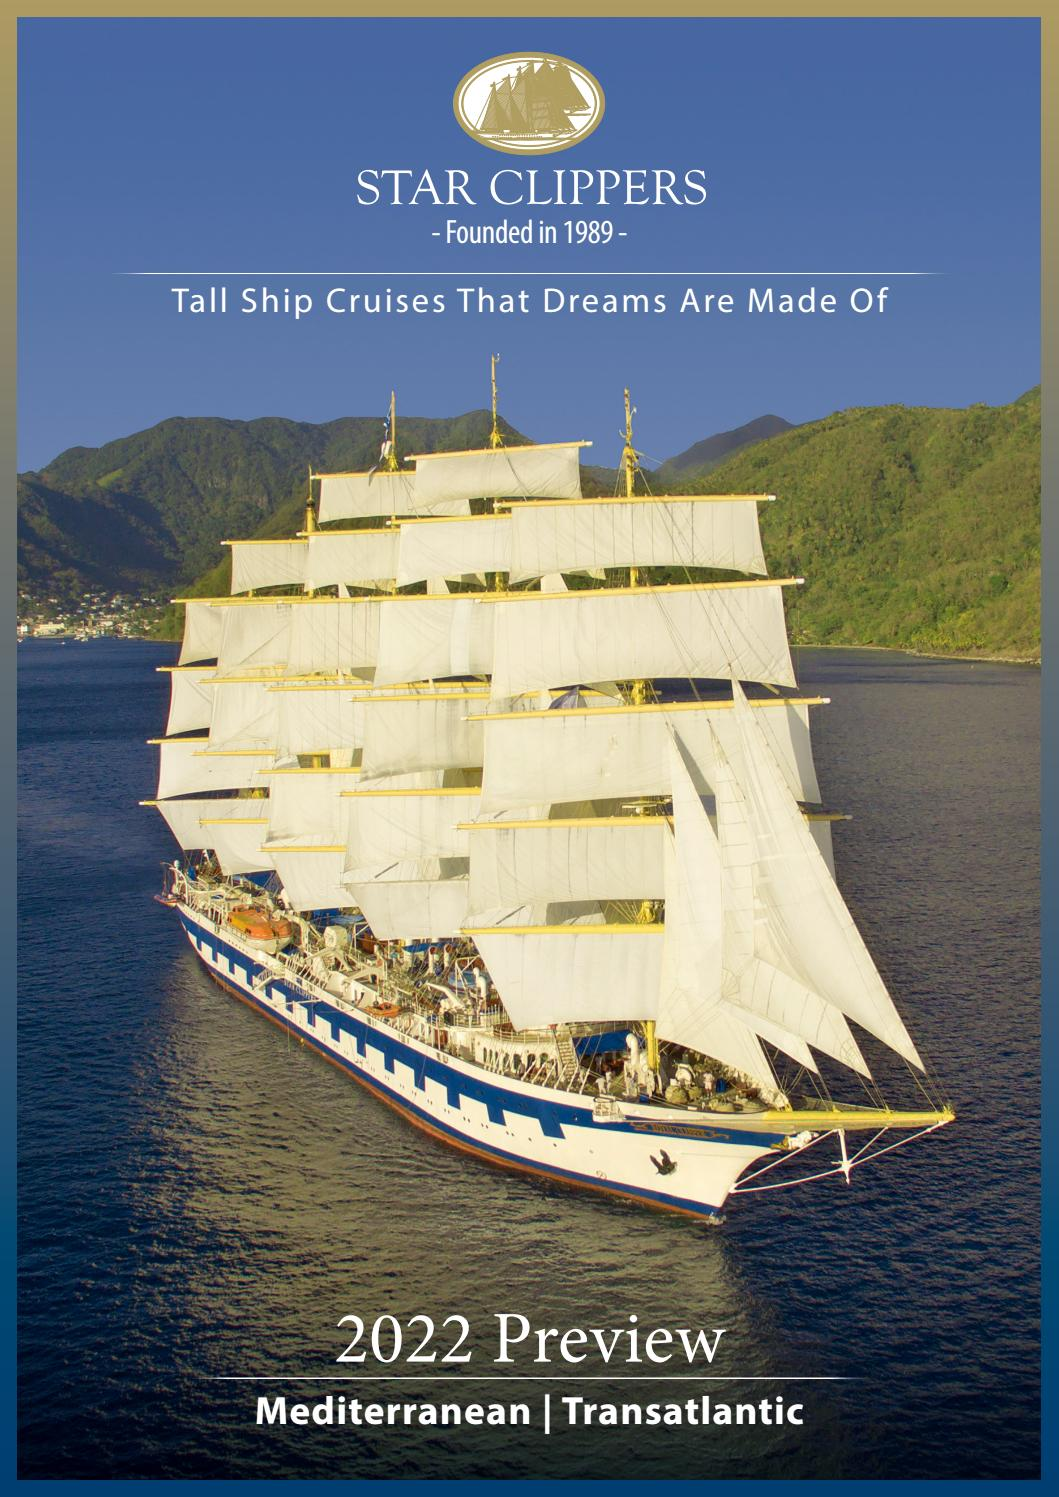 Star Clippers 2022 Mediterranean Preview